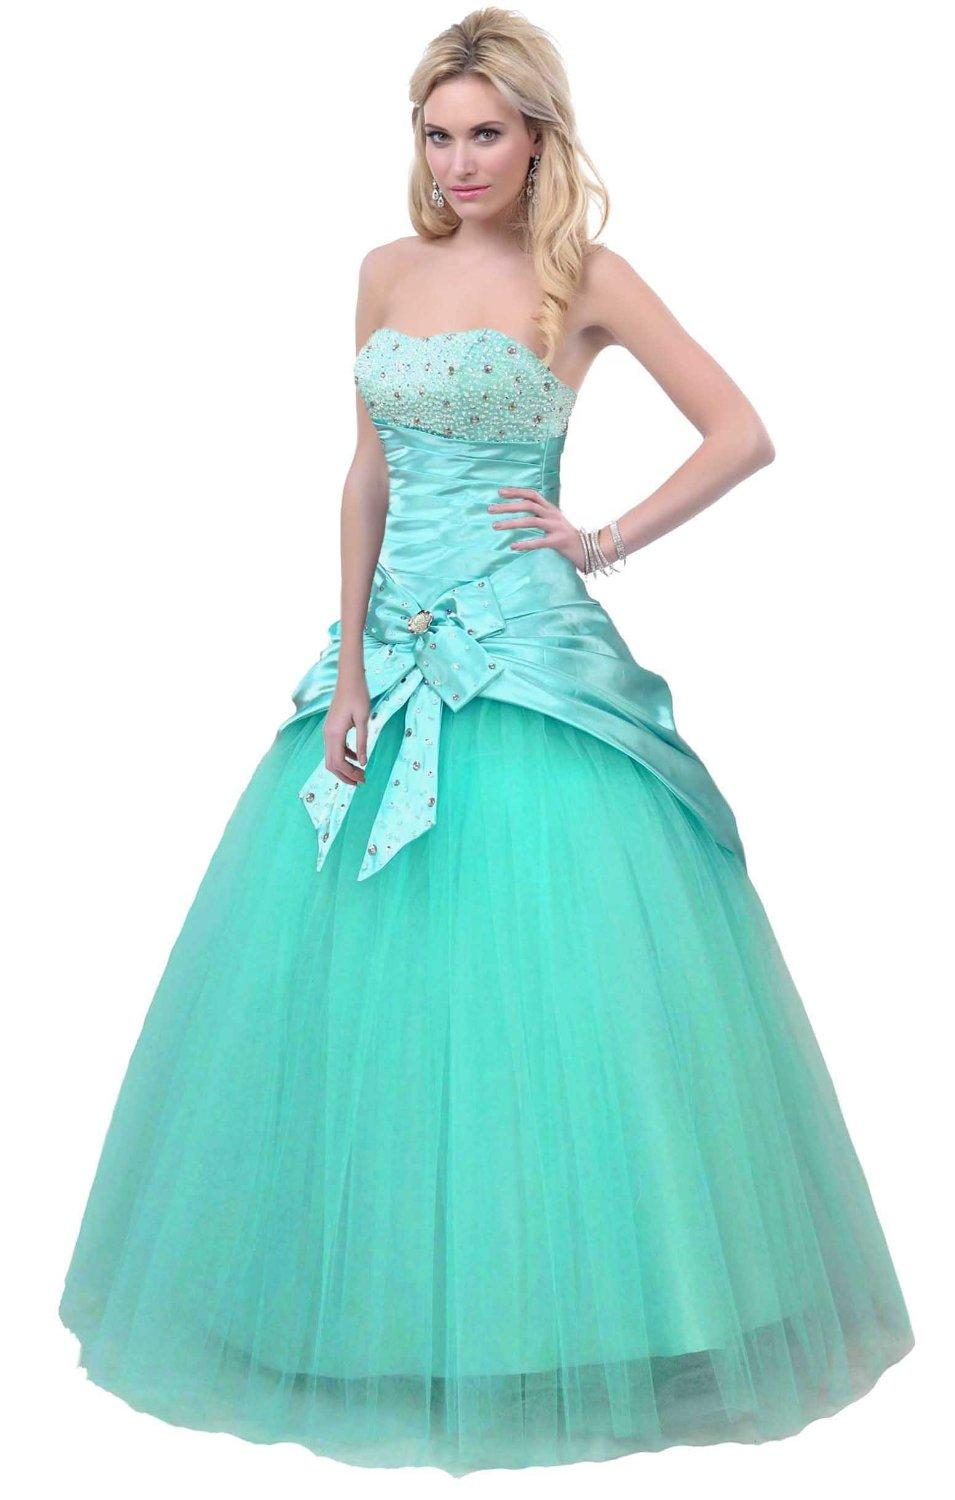 Faironly Turquoise Formal Dress Prom Gown from Amazon | Eu ... - photo #48